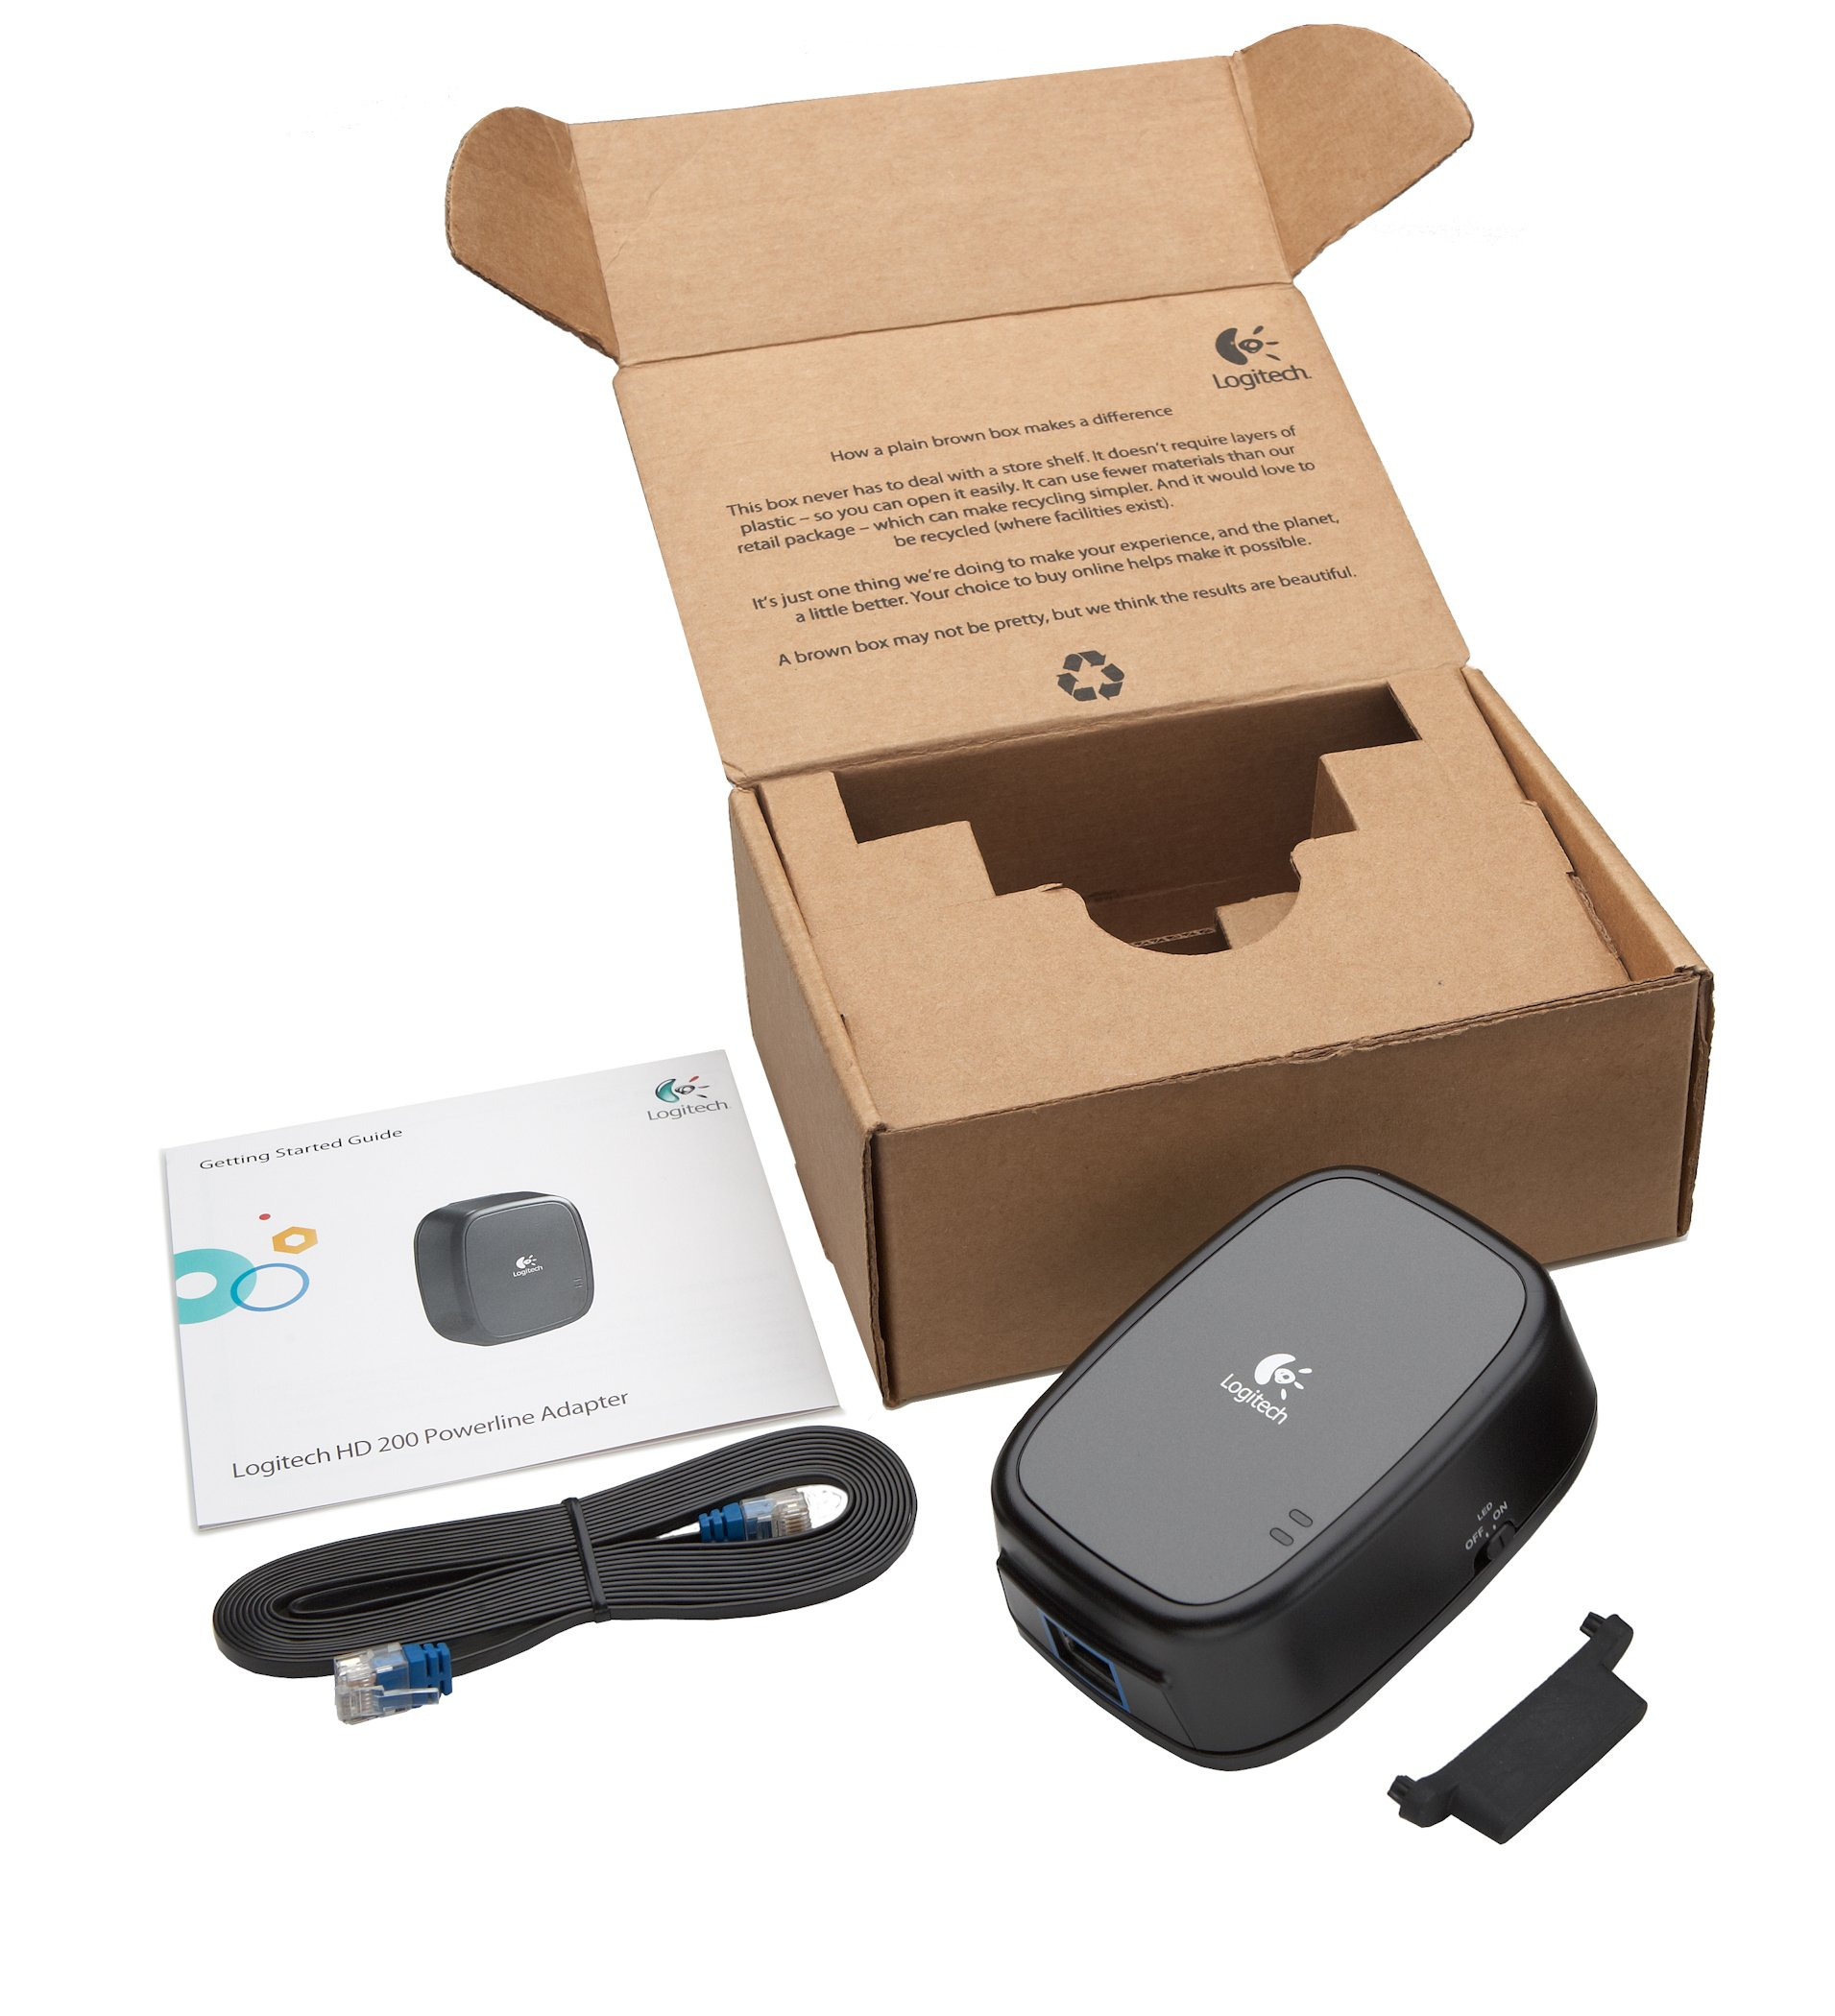 Logitech HD Powerline 200 Adapter - Connect Devices to Internet Using Existing Power Outlets by Logitech (Image #5)